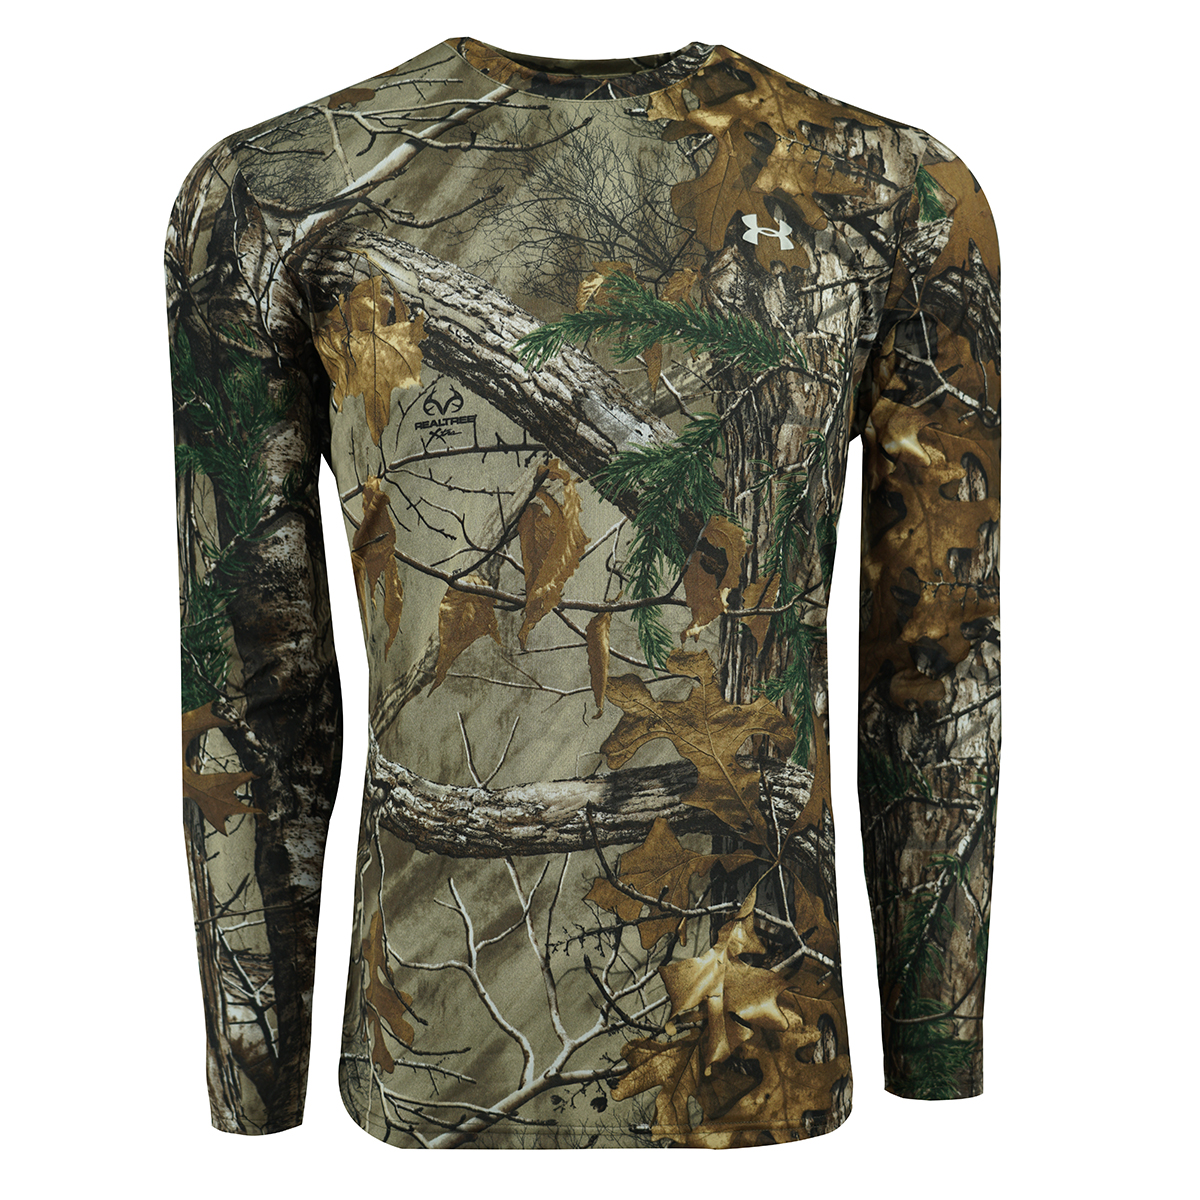 46498dba Under Armour Men's Heatgear Tech L/S T-Shirt Camo/Silver M | eBay